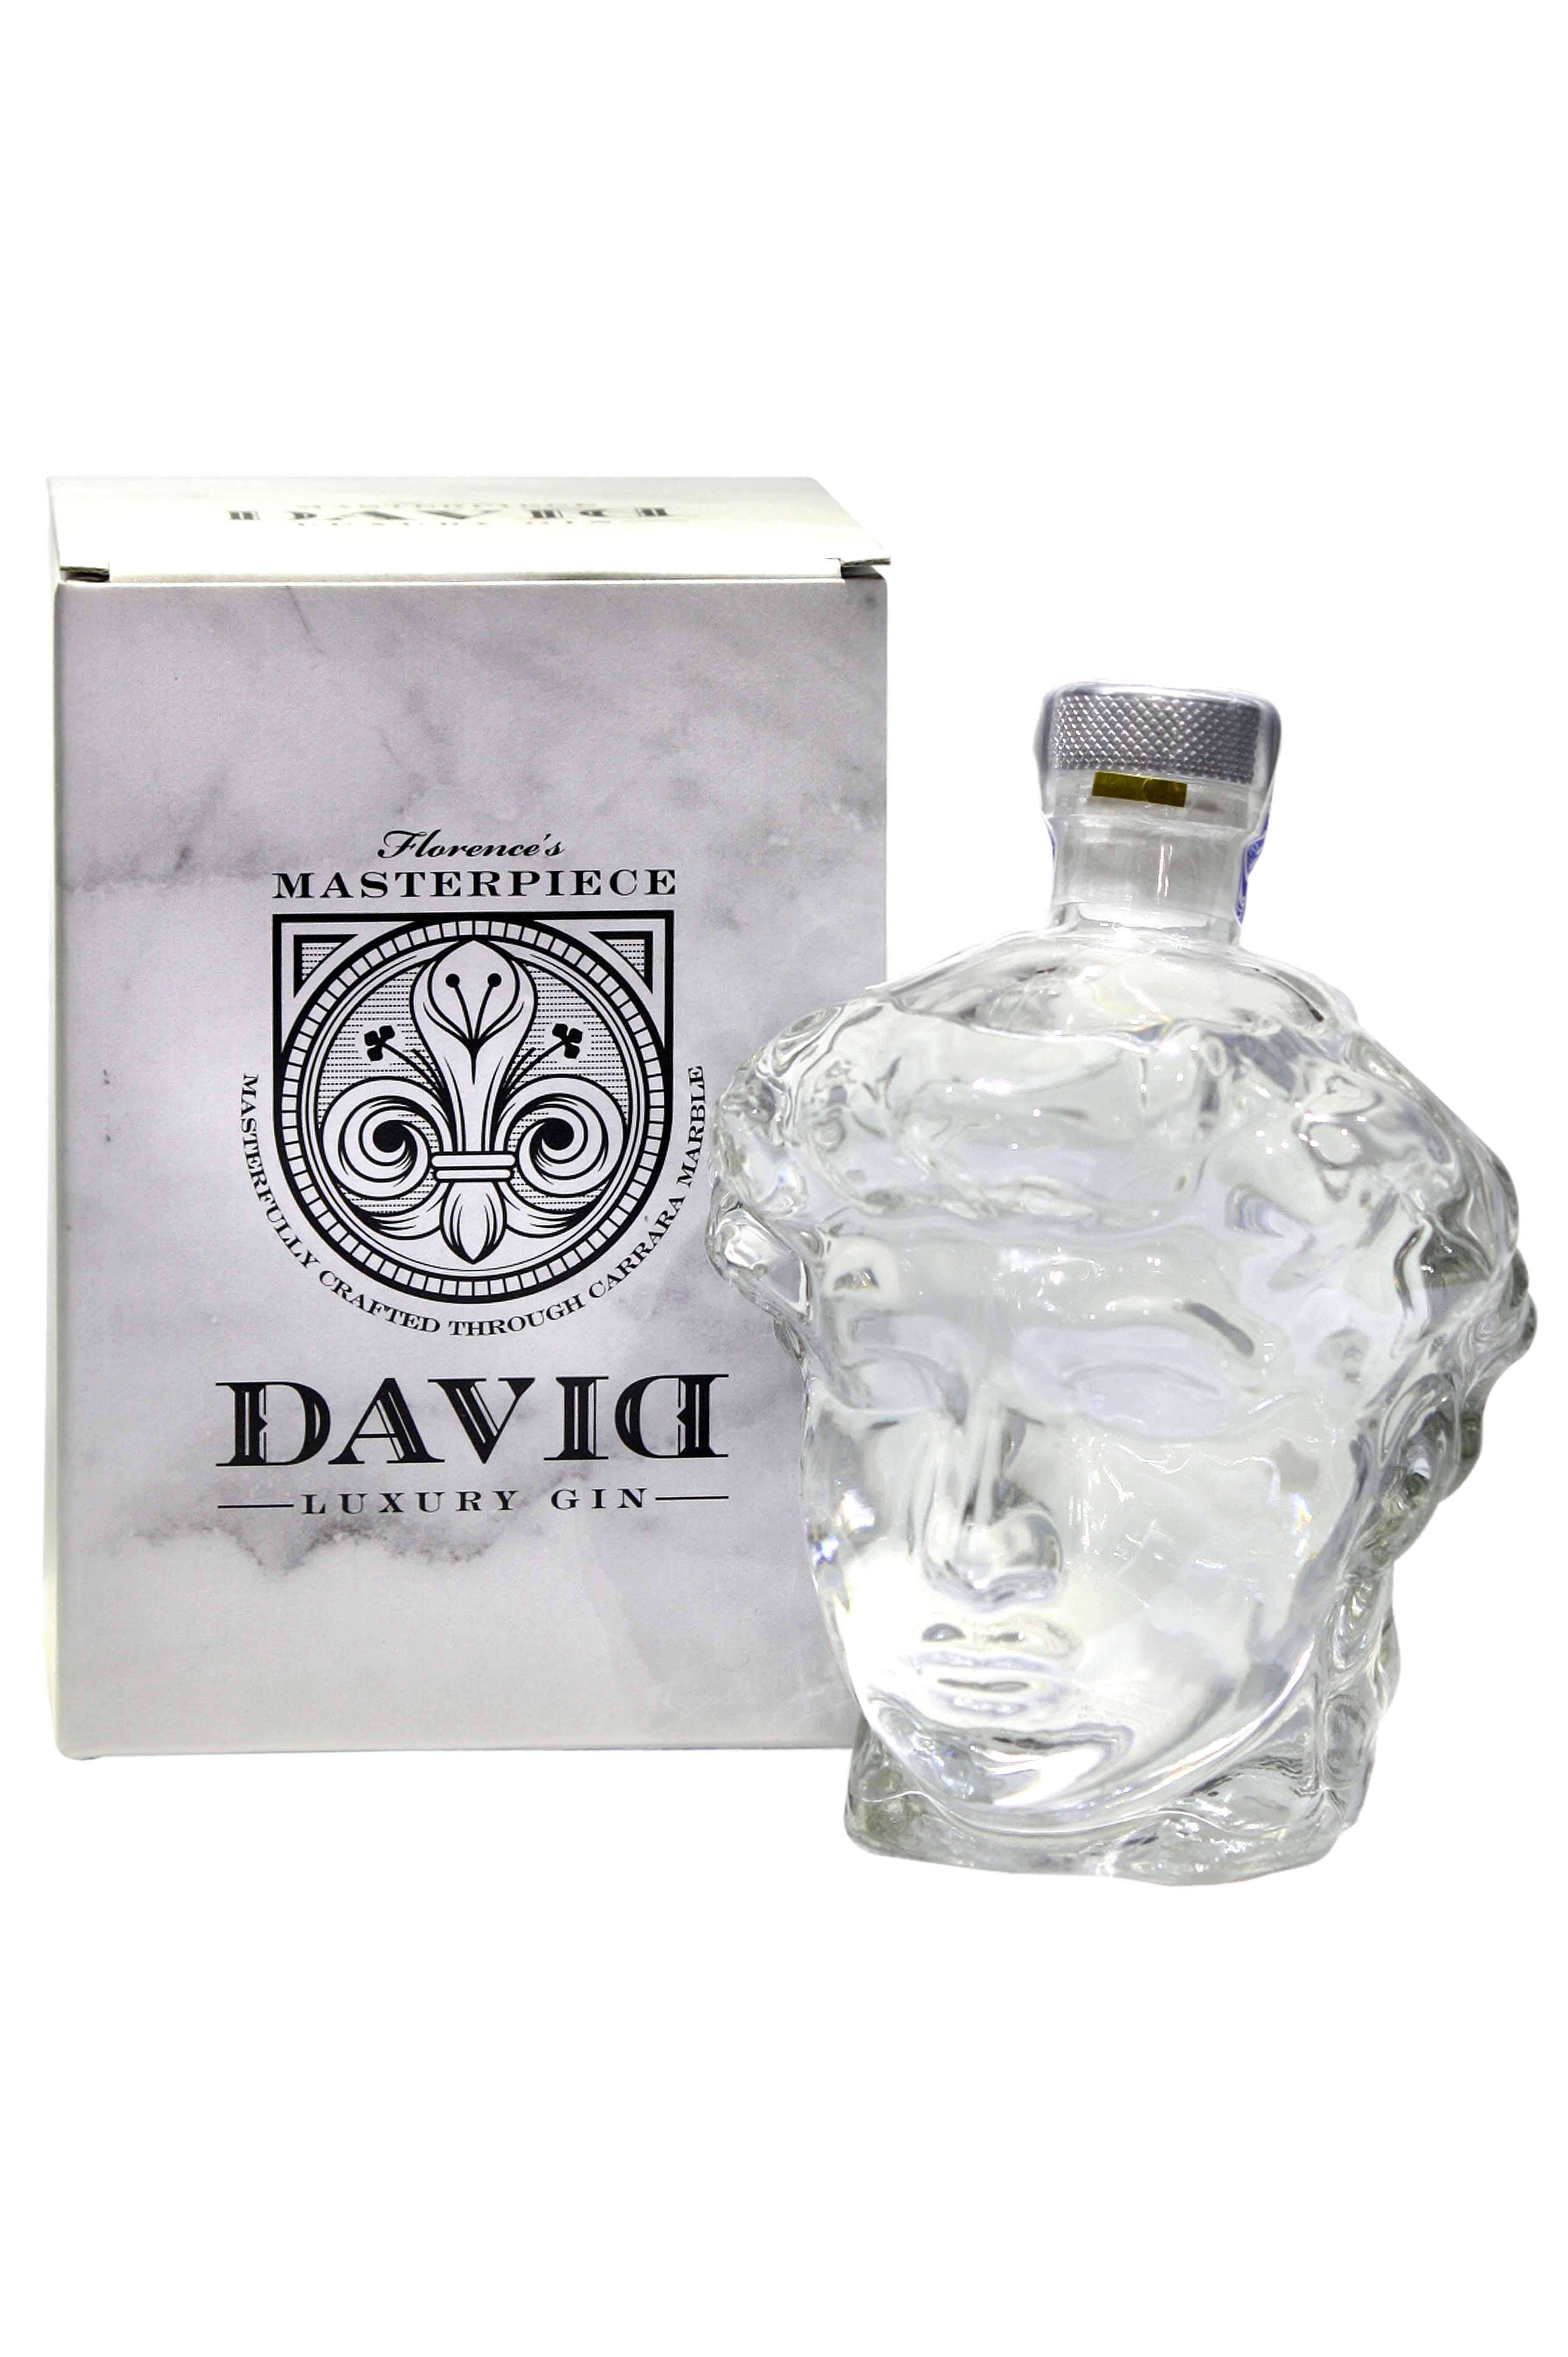 David premiun luxury gin